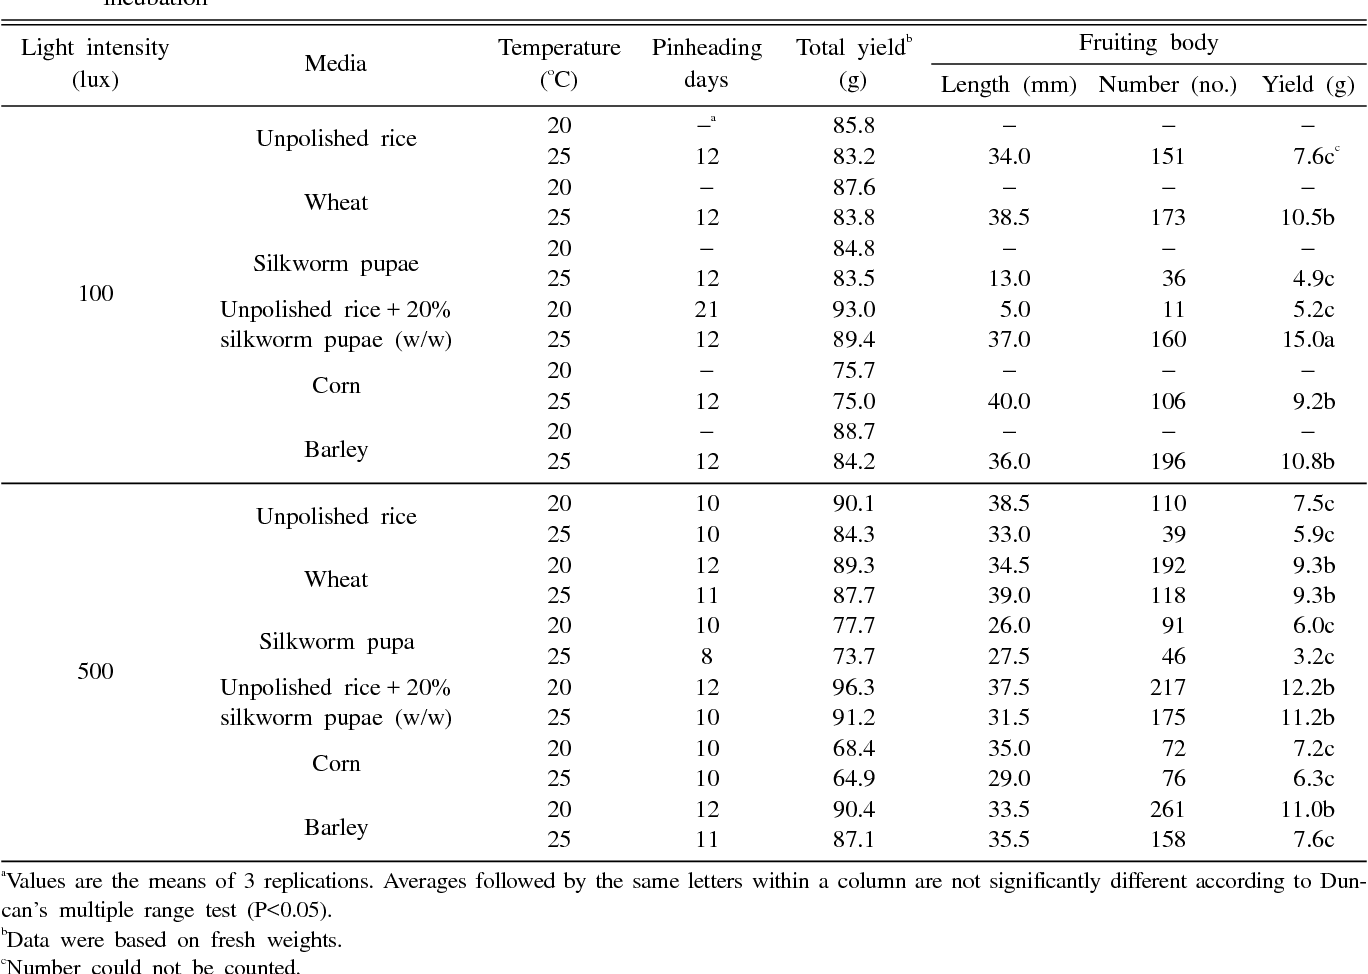 Table 7. Artificial fruiting body formation of Paecilomyces fumosoroseus under various culture conditions after 40 days of incubation